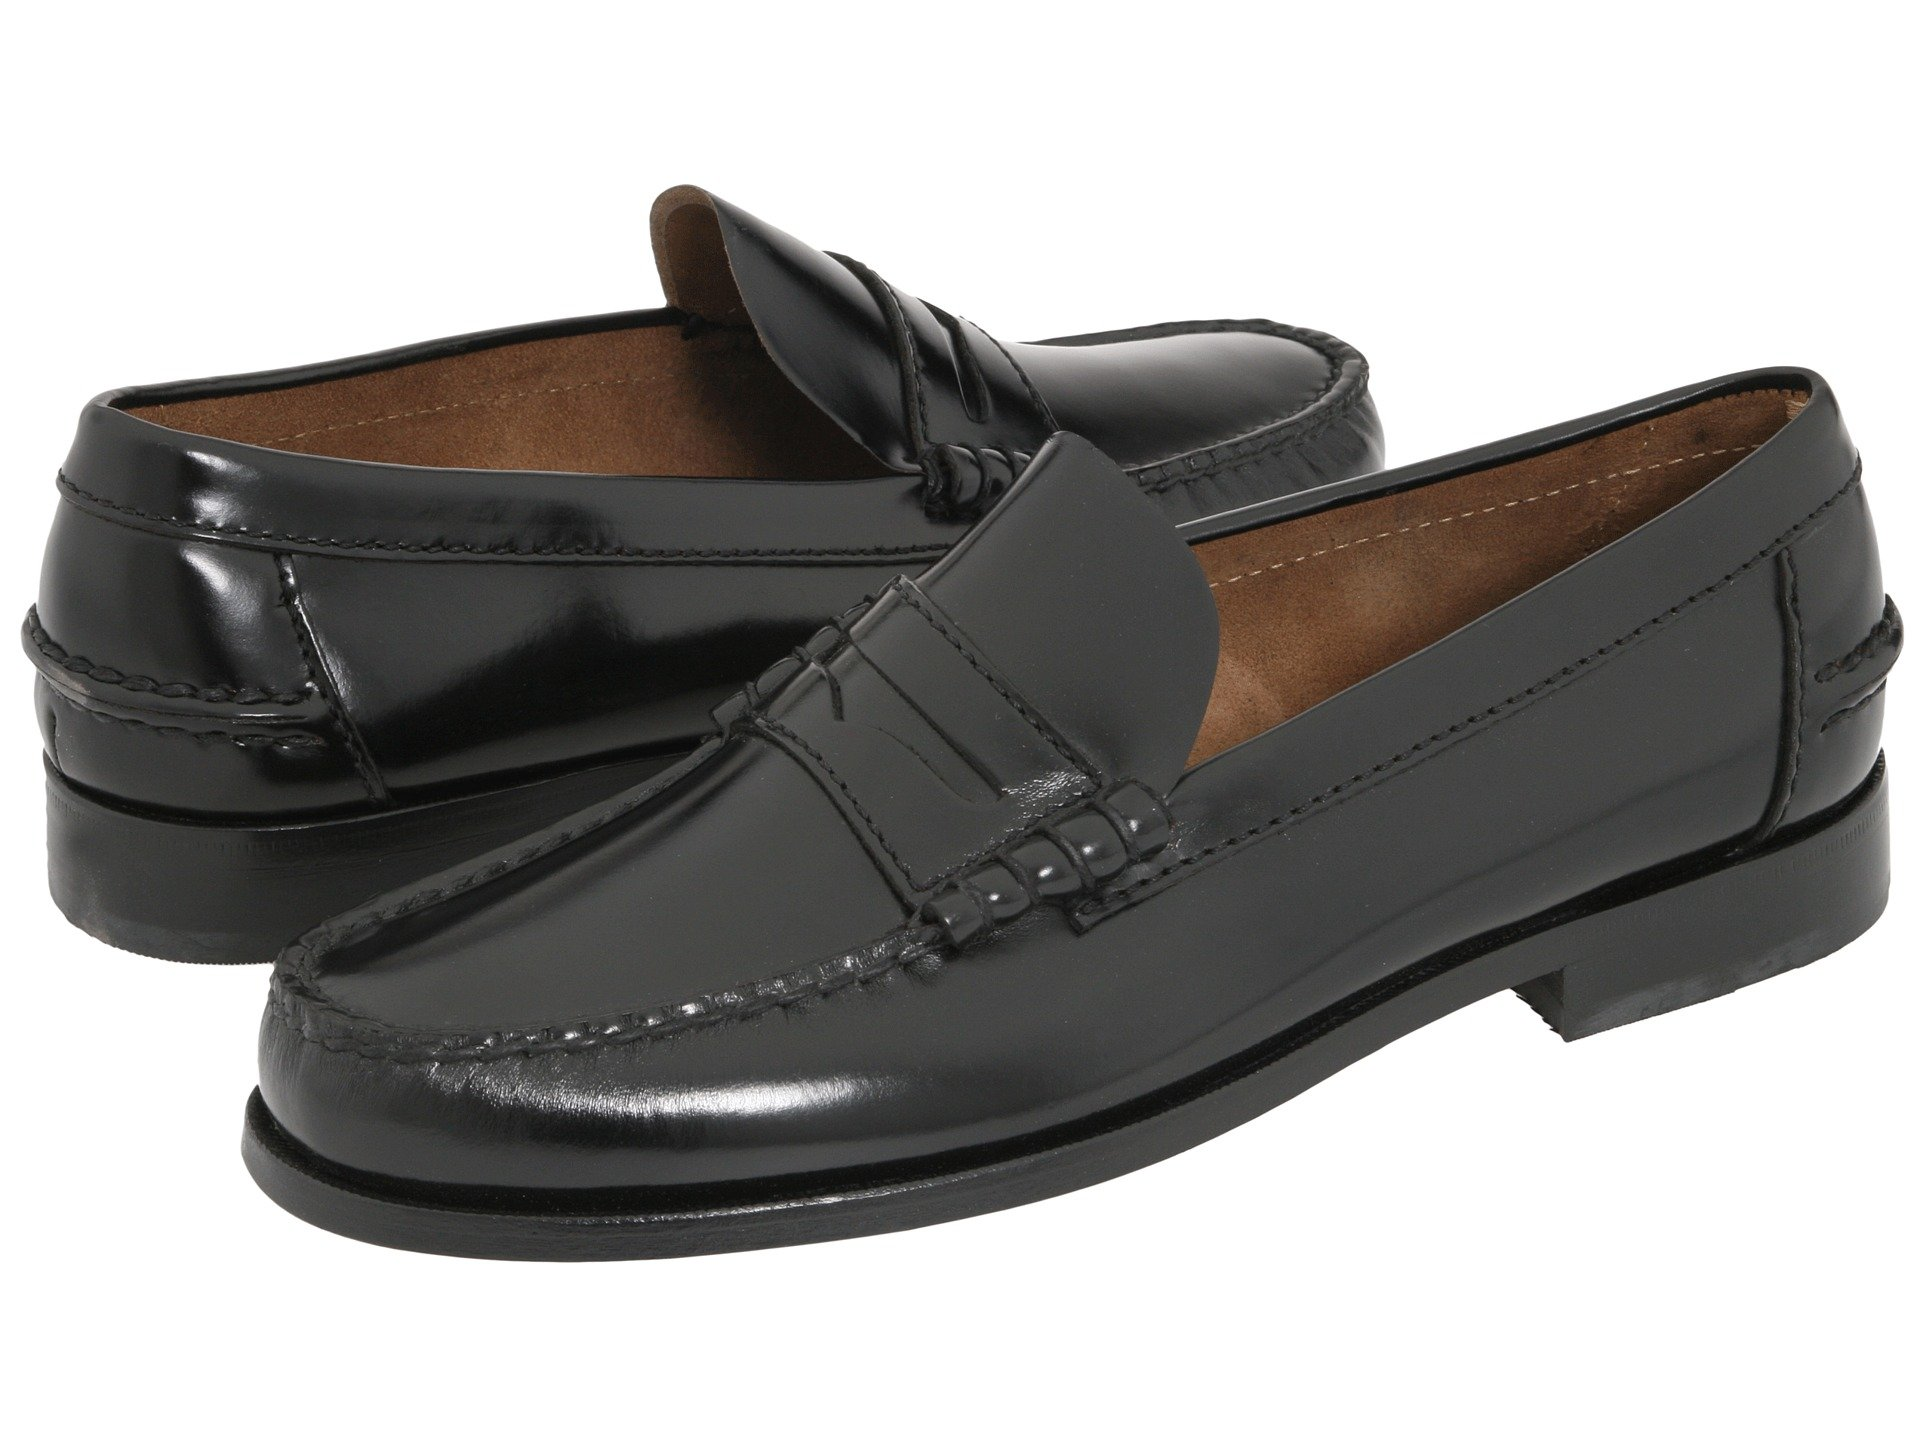 57ab8108b0a Men's Dress Loafers + FREE SHIPPING | Shoes | Zappos.com